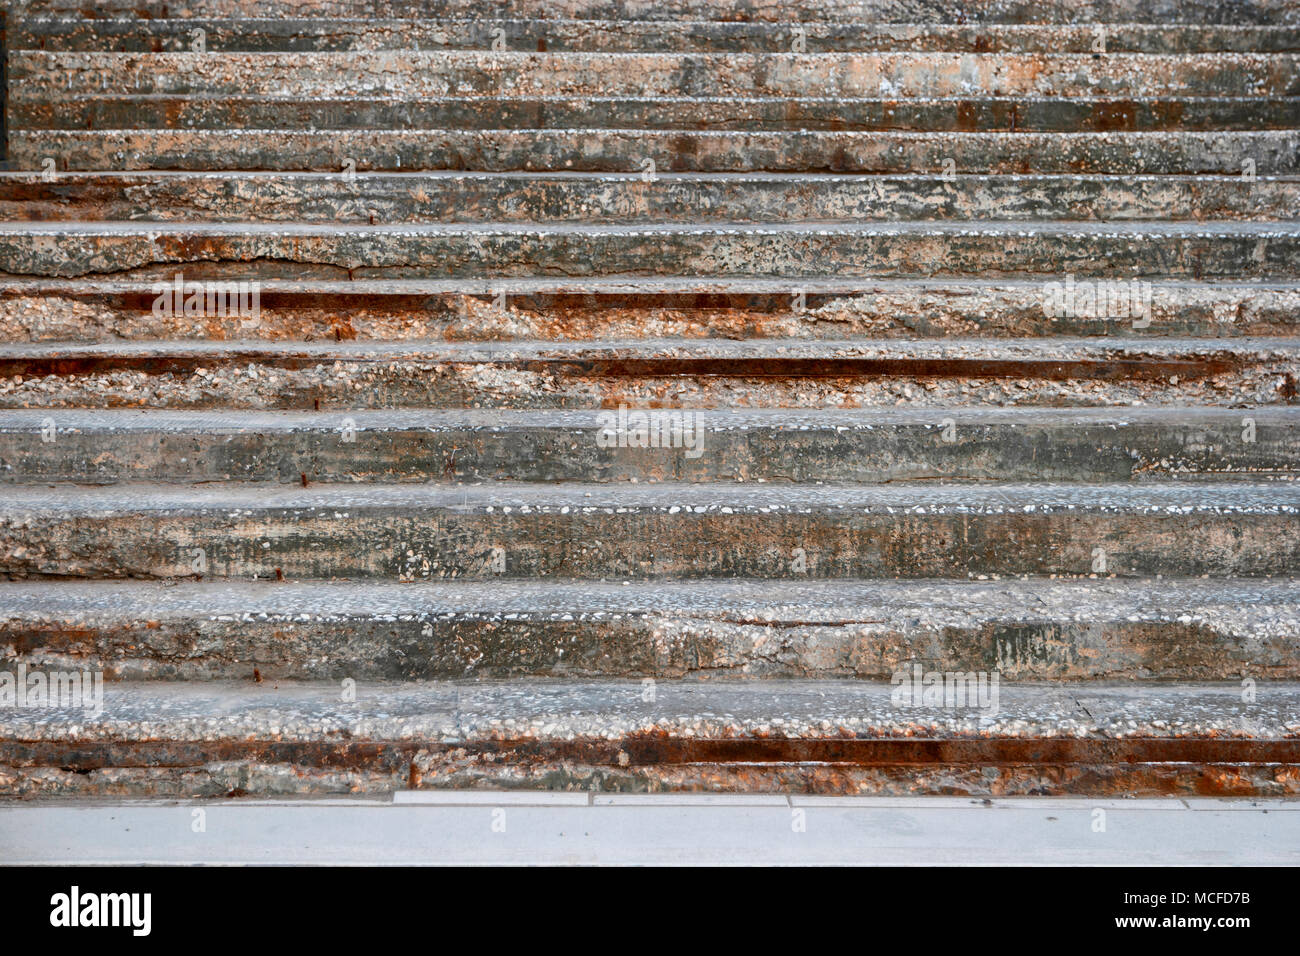 Geometric Grungy Stairs Deadpan Style Image Horizontal - Stock Image